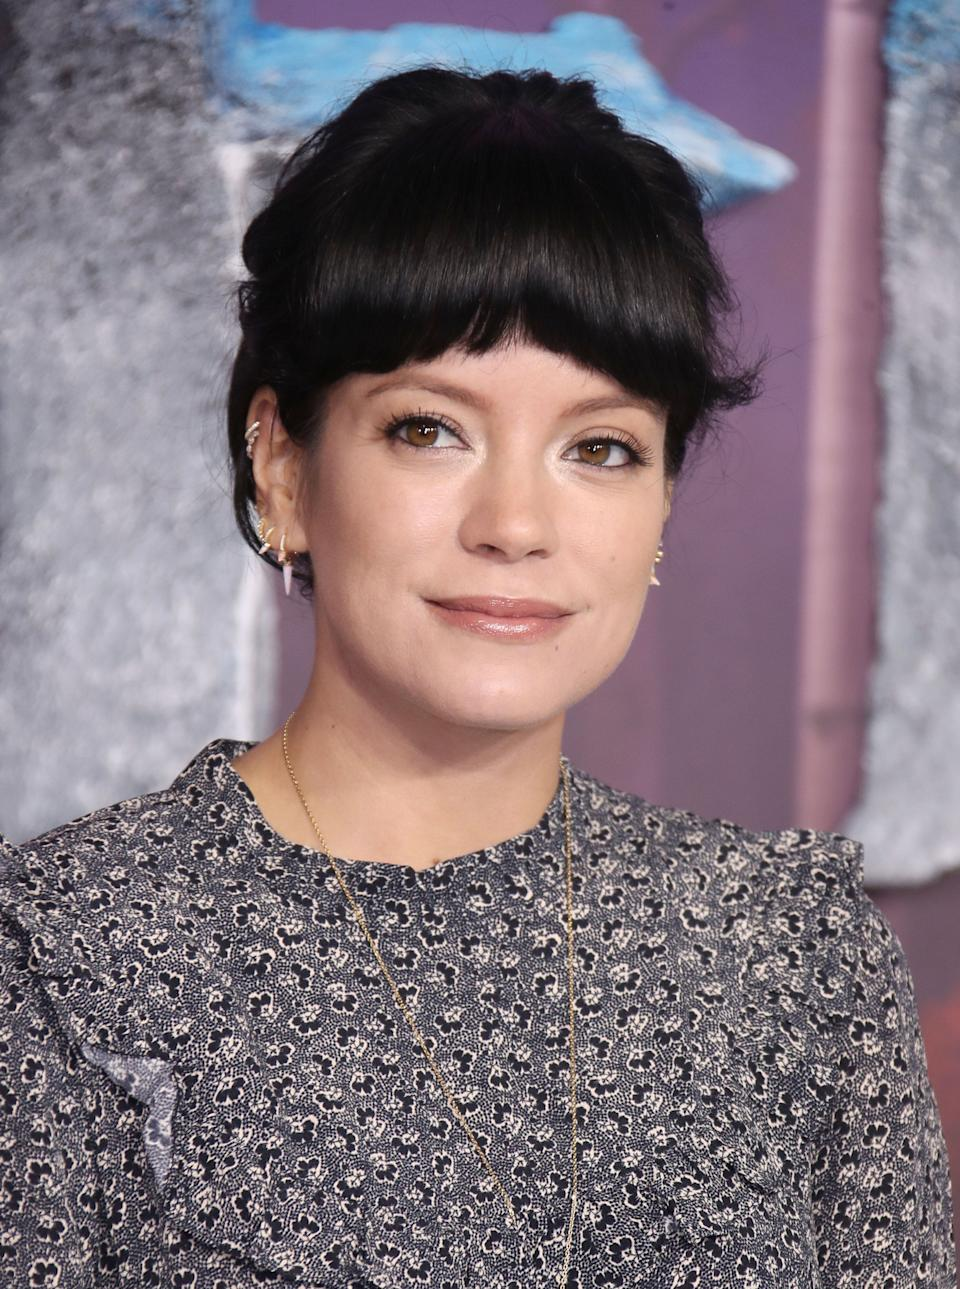 Lily Allen (Photo: Mike Marsland via Getty Images)